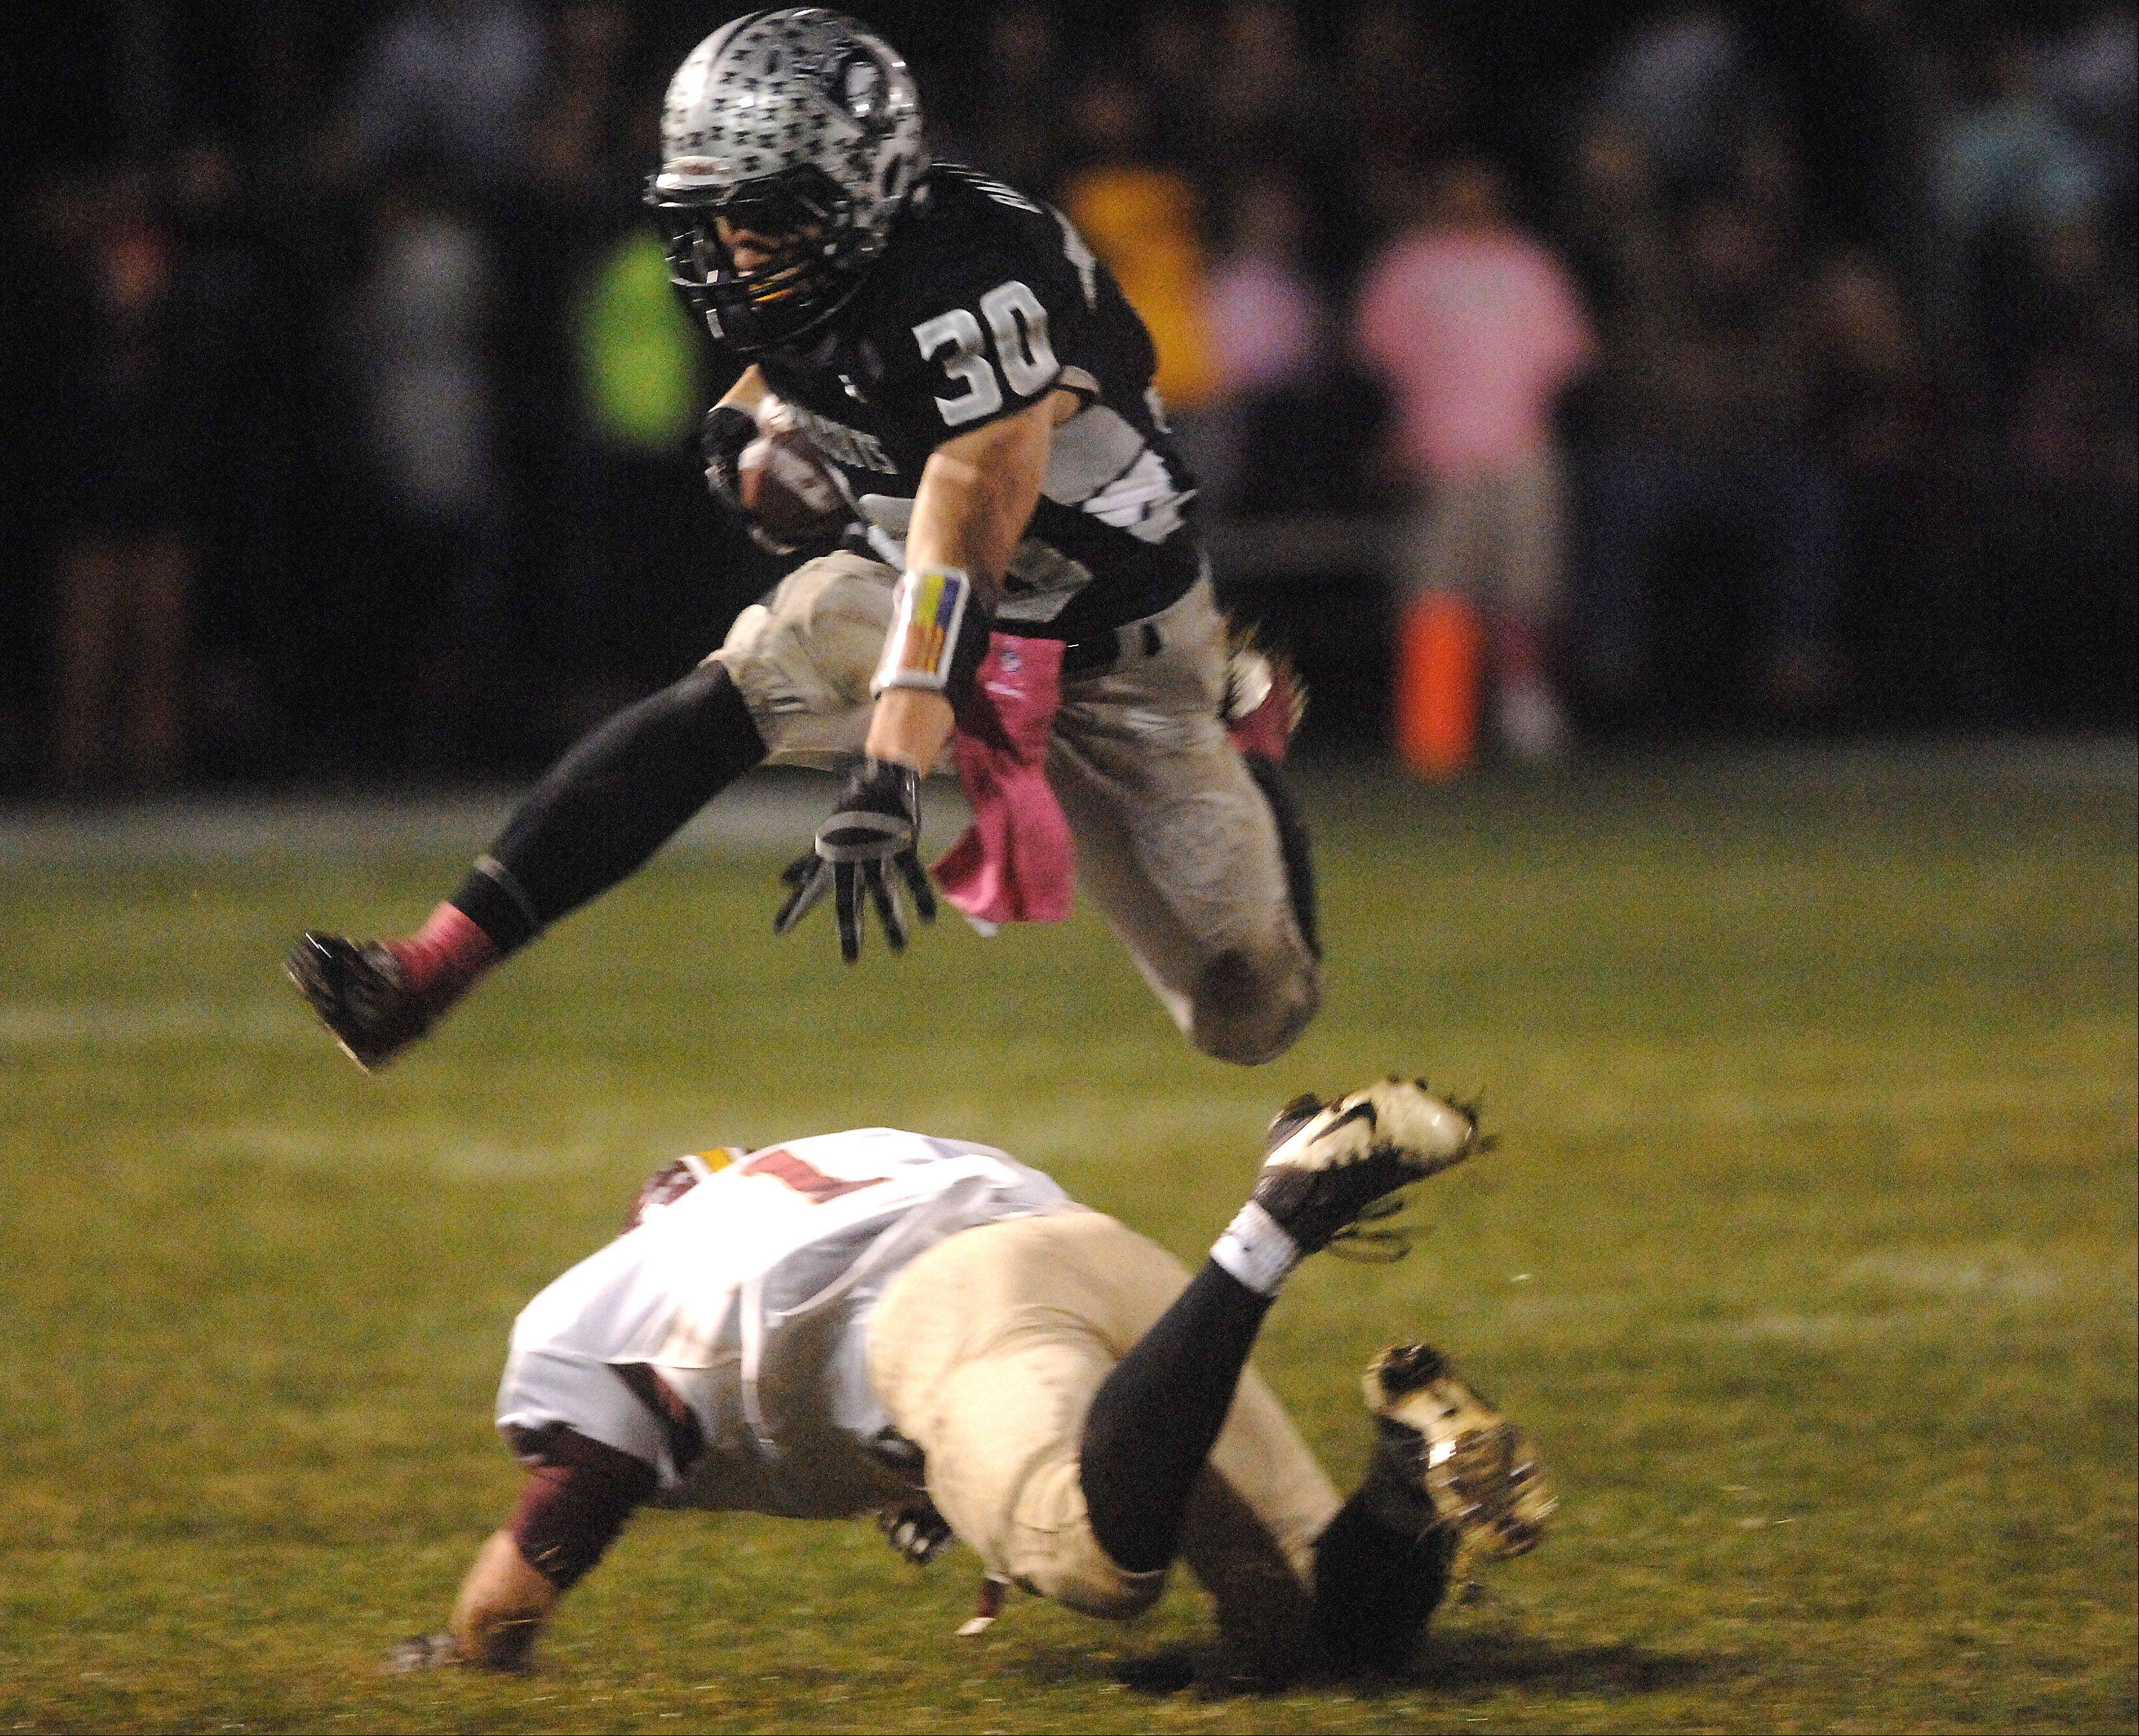 Jesse Balluff, pictured hurdling a would-be Morris tackler during last year's Northern Illinois Big XII East Conference-clinching 33-30 win, will be one of the key players on a Kaneland team that enters the season on a 28-game regular season winning streak.